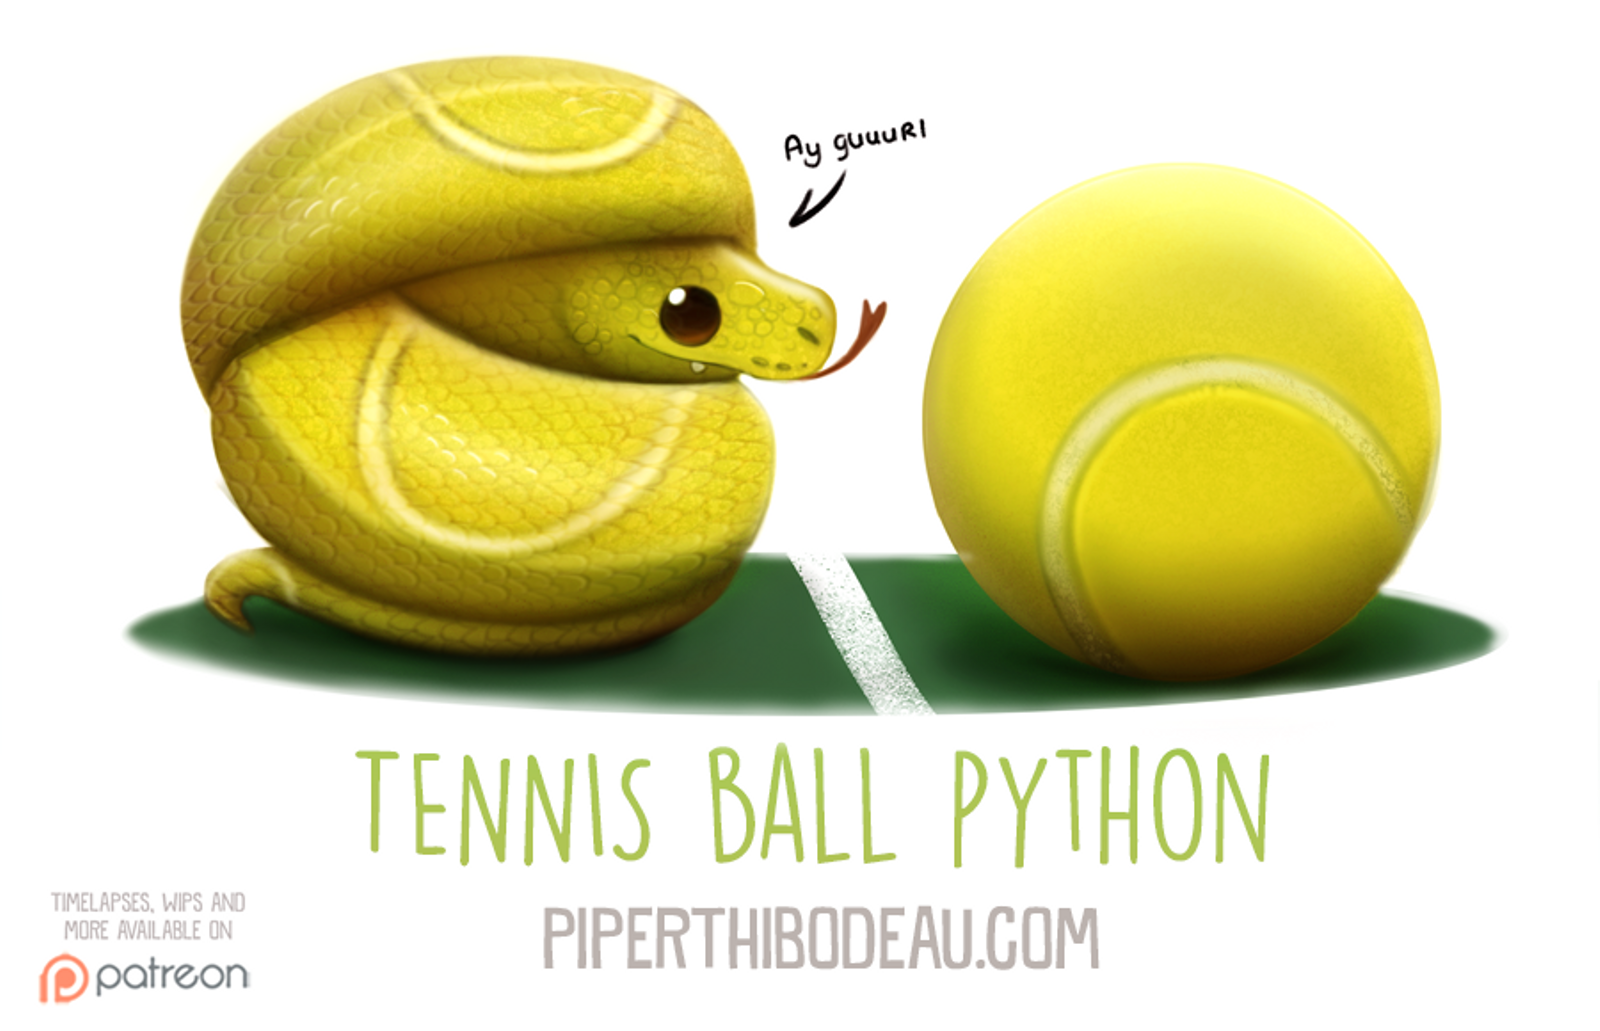 Daily Paint 1594 Tennis Ball Python Piper Thibodeau On Patreon Cute Animal Drawings Kawaii Cute Animal Drawings Cute Fantasy Creatures